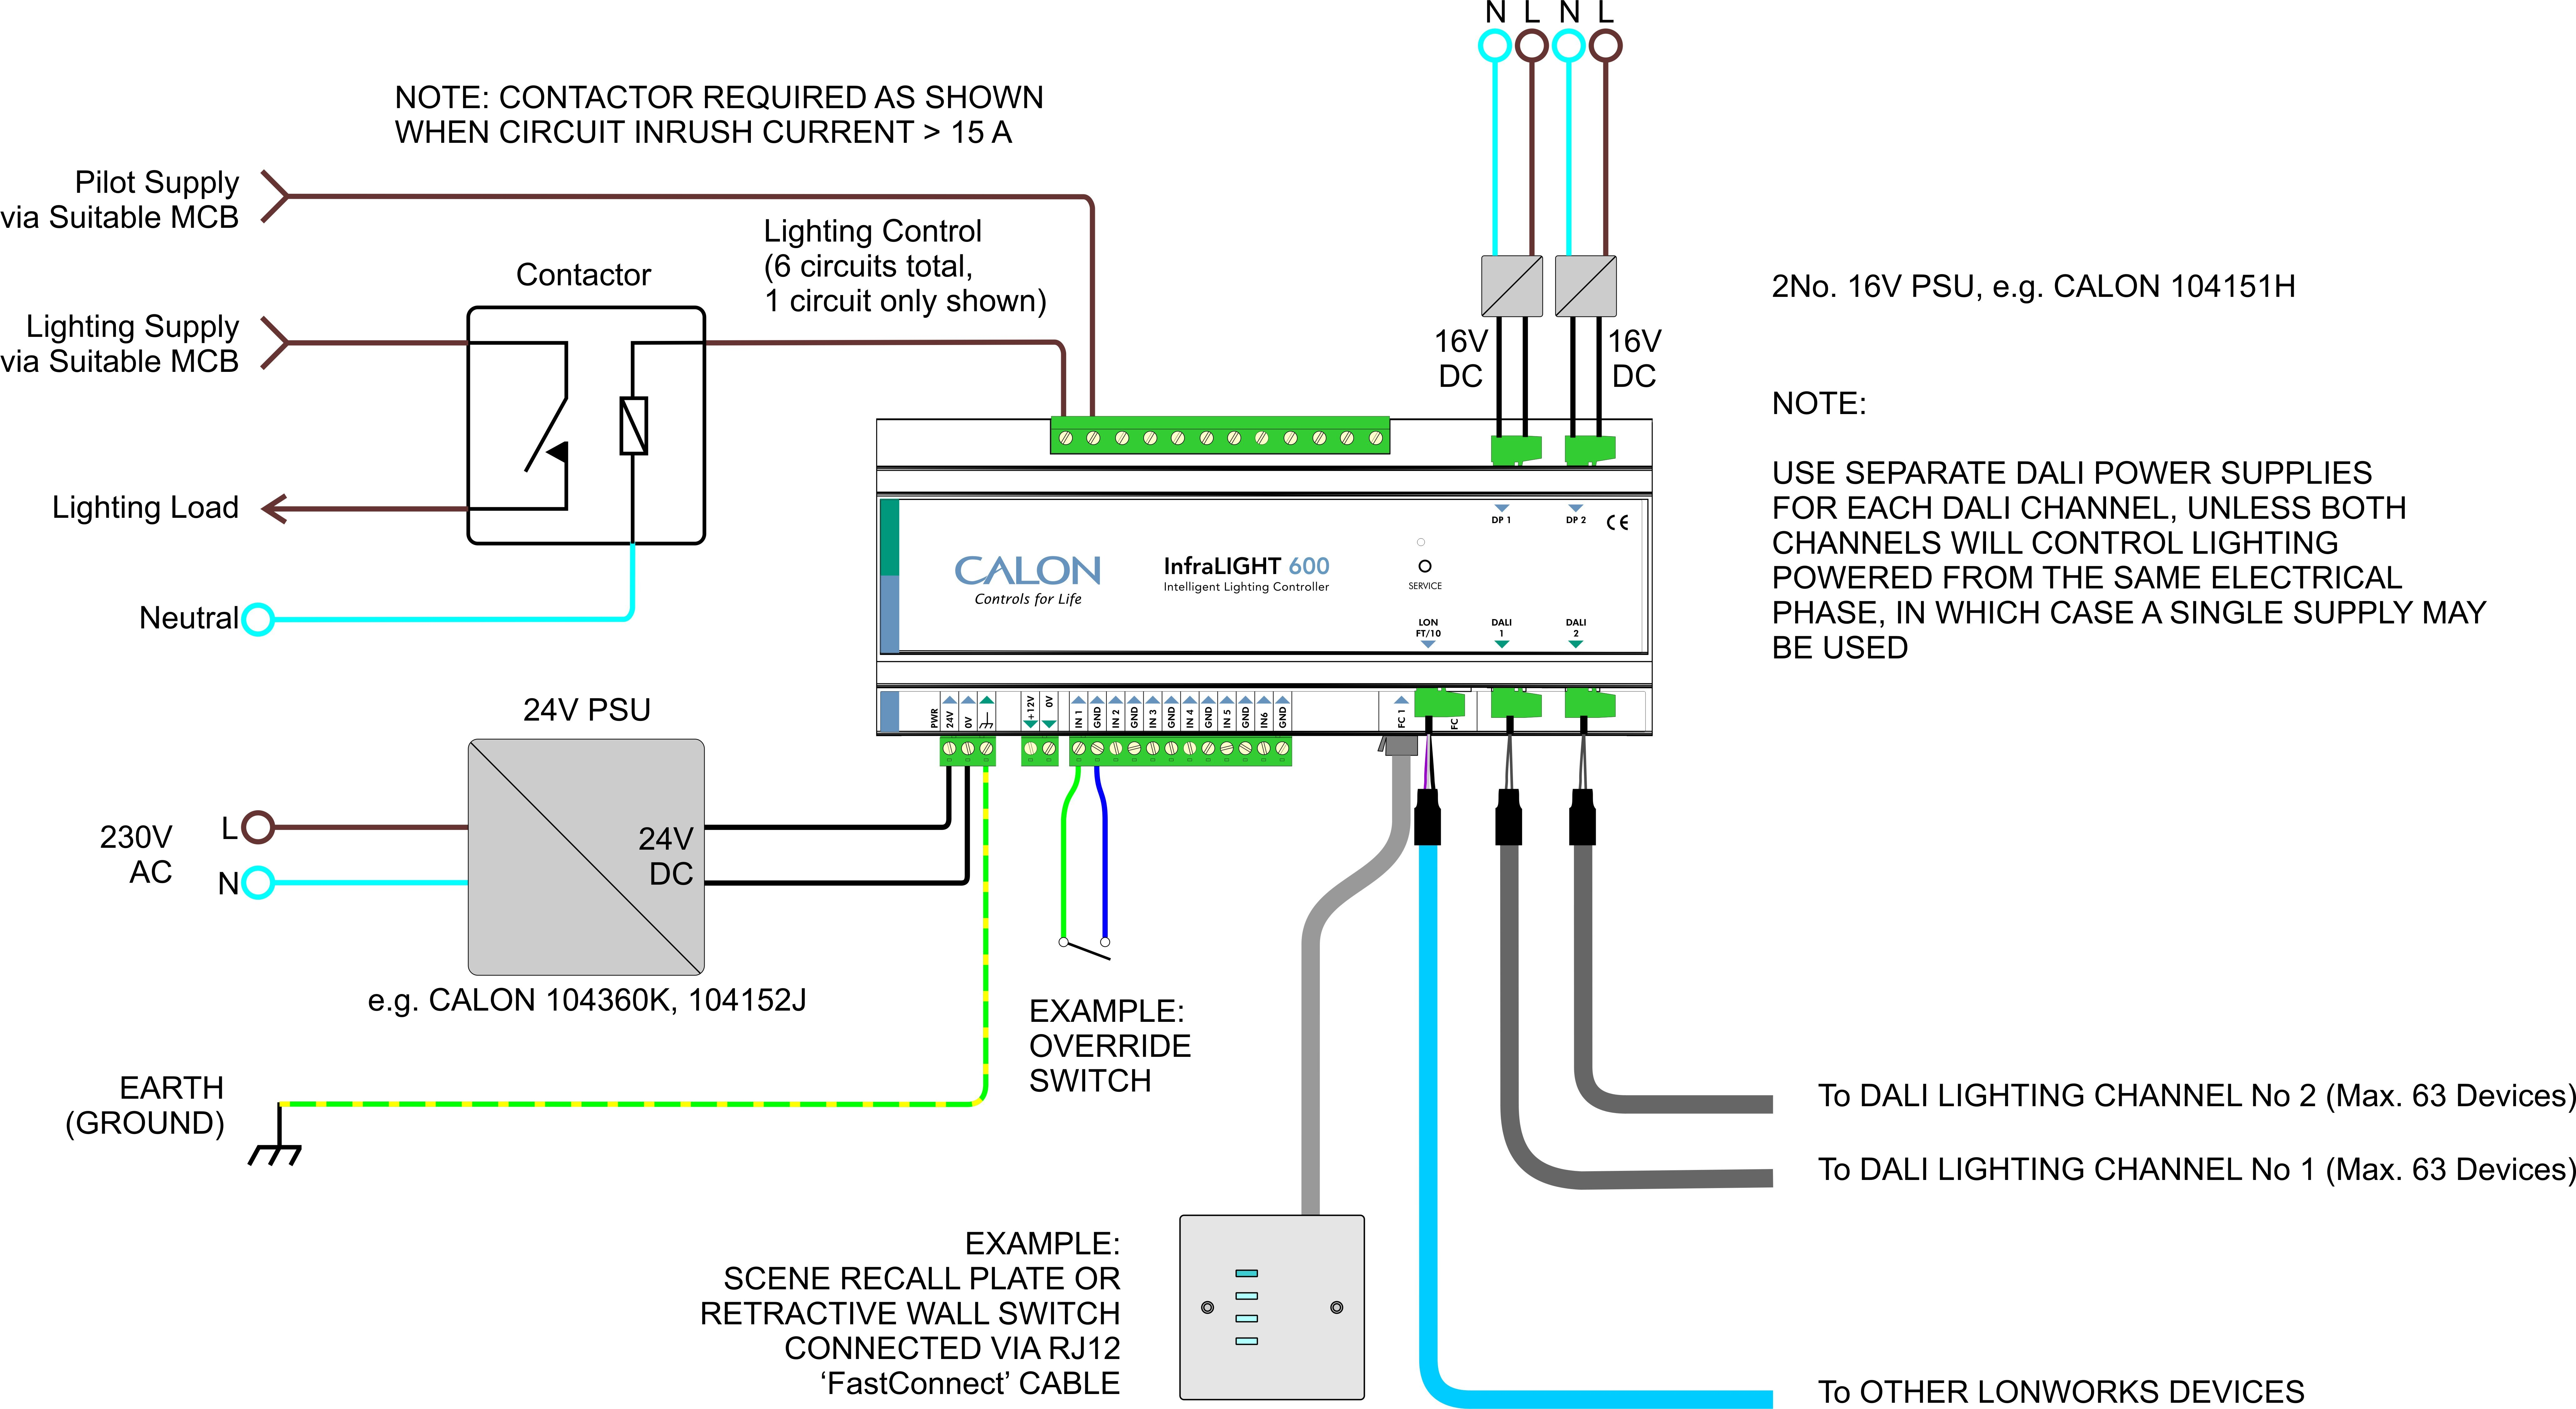 Lighting control panel wiring diagram pdf trusted wiring diagram lighting control diagram diy wiring diagrams u2022 photography lighting diagrams lighting control panel wiring diagram pdf asfbconference2016 Image collections